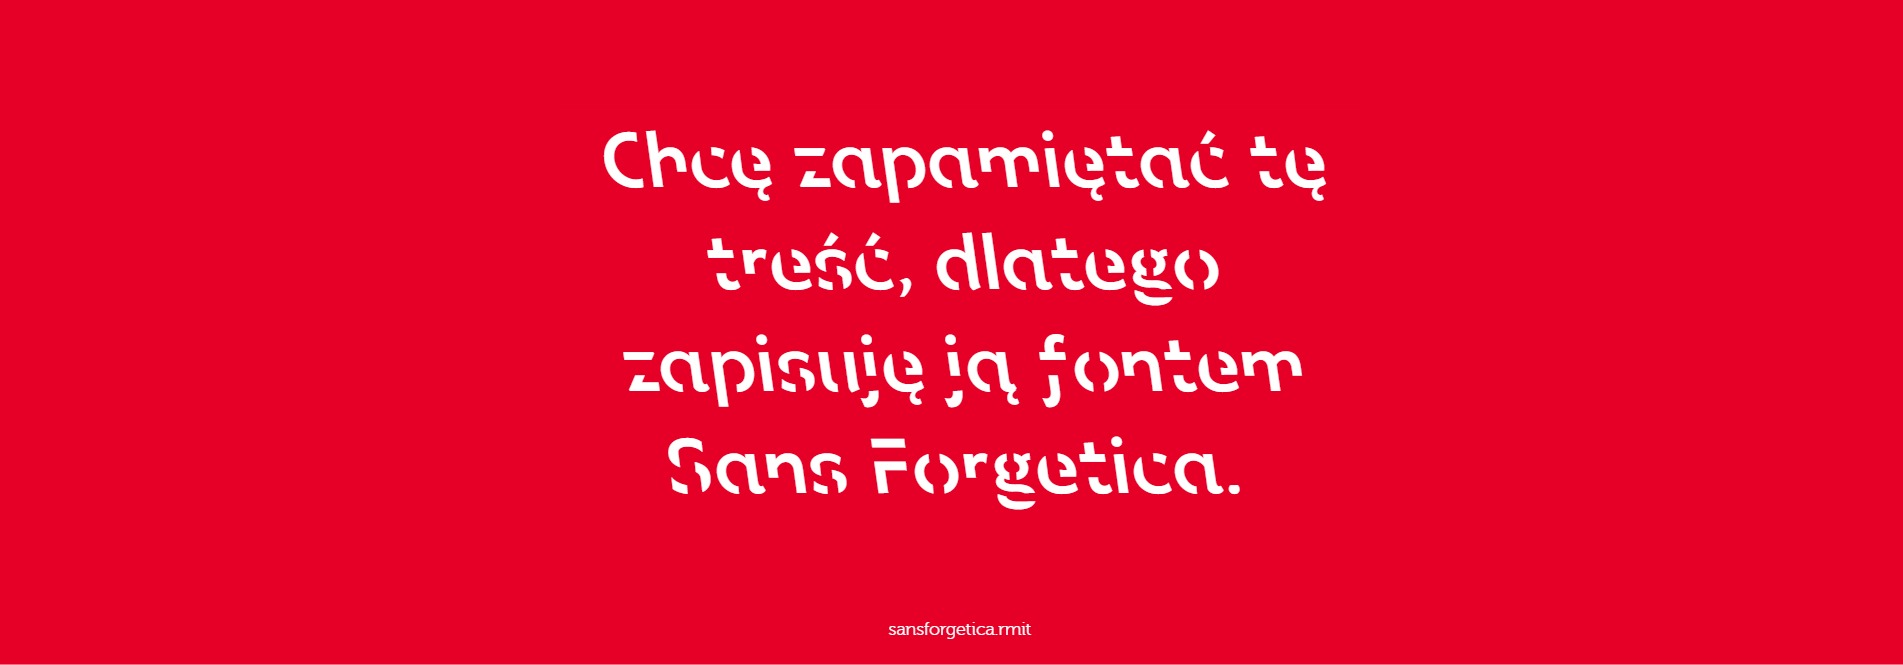 sans forgetica - test